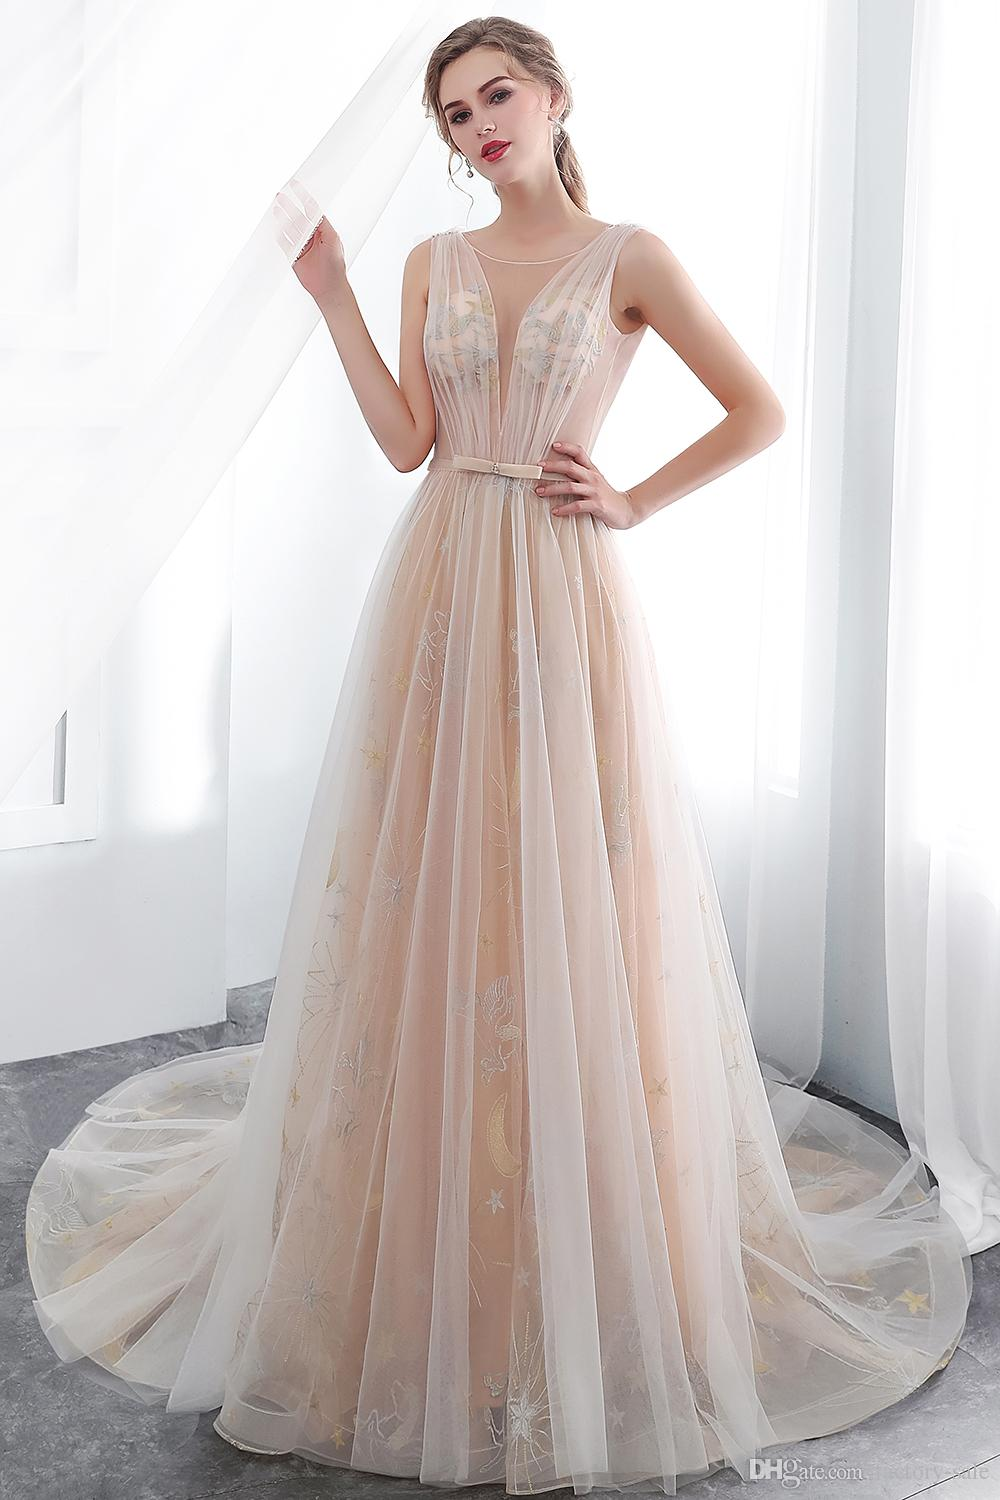 2019 Light Champagne Vintage Evening Dresses Sheer Neck V Neck Lace  Appliques Plus Size Formal Dresses Elegant Abiti Cerimonia CPS1005 Evening  Dresses ...